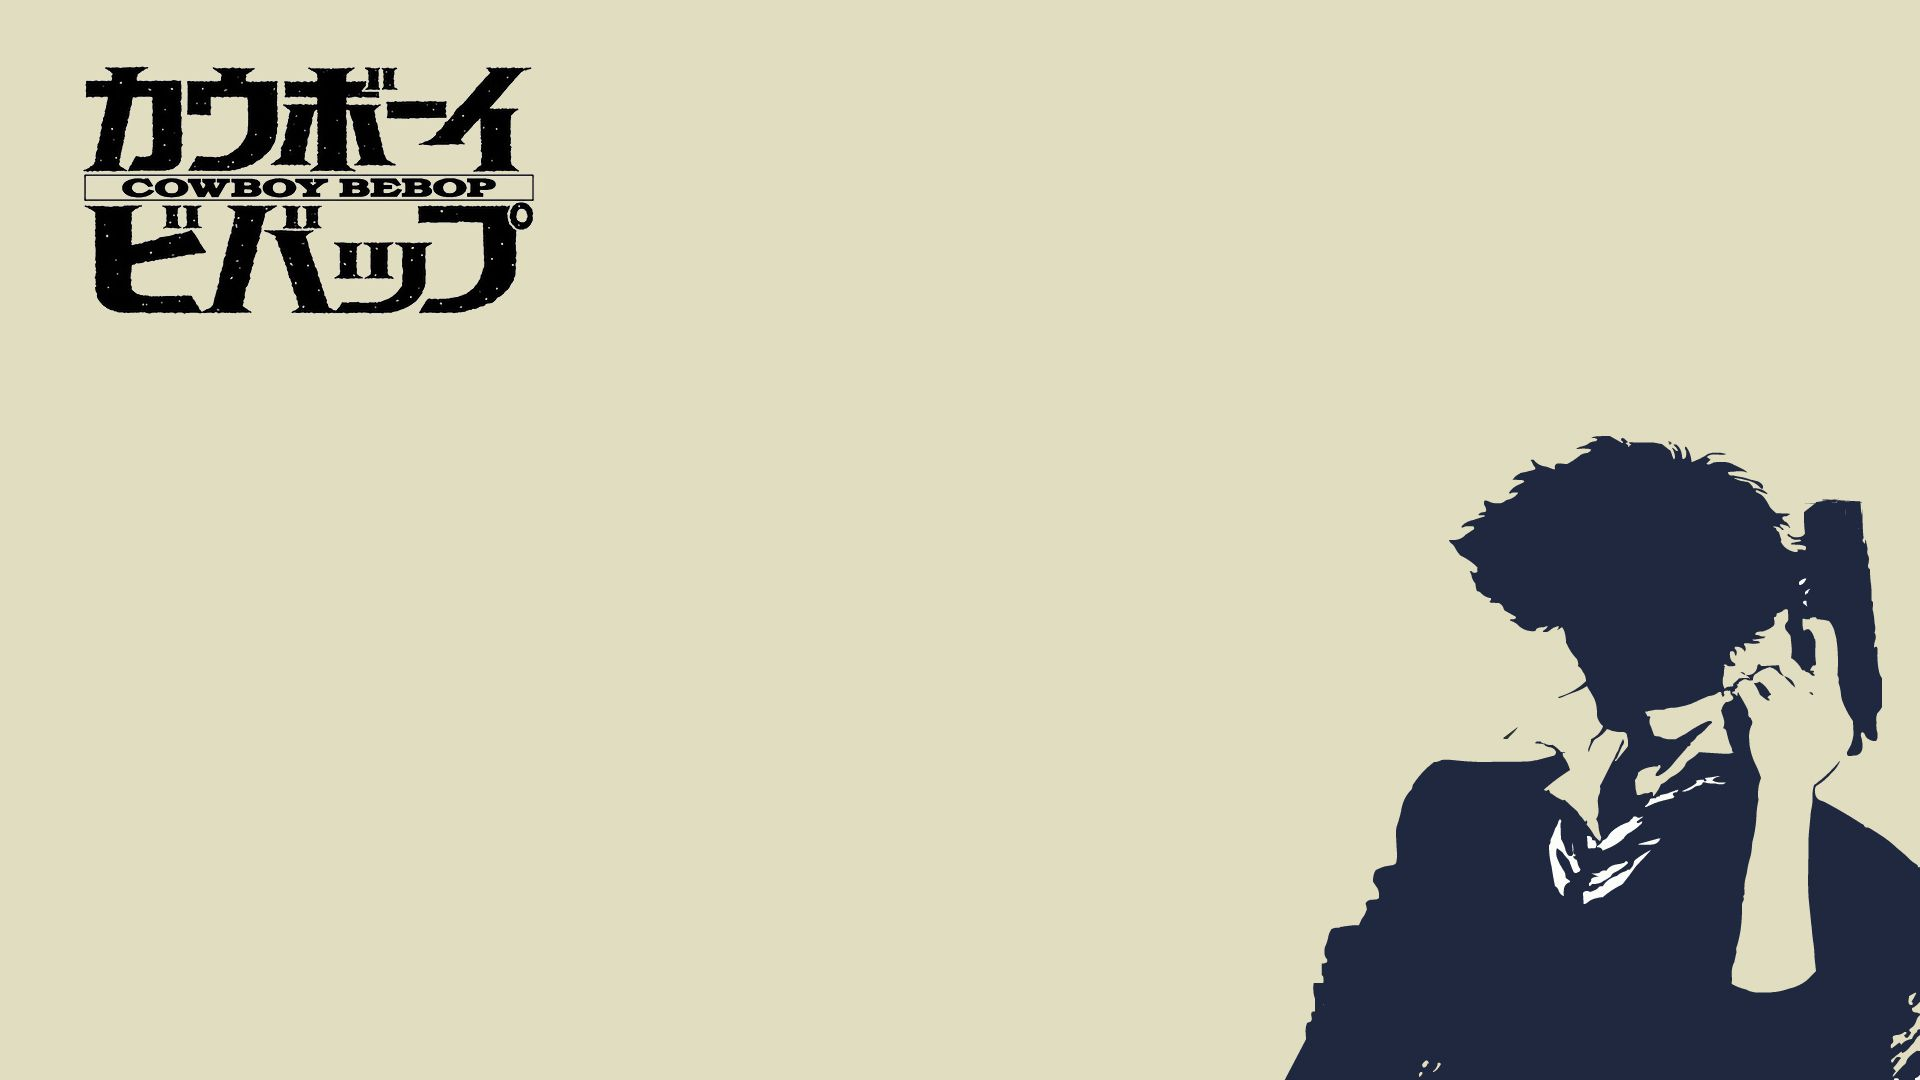 Anime Backgrounds Cowboy Bebop Wallpapers by Robert